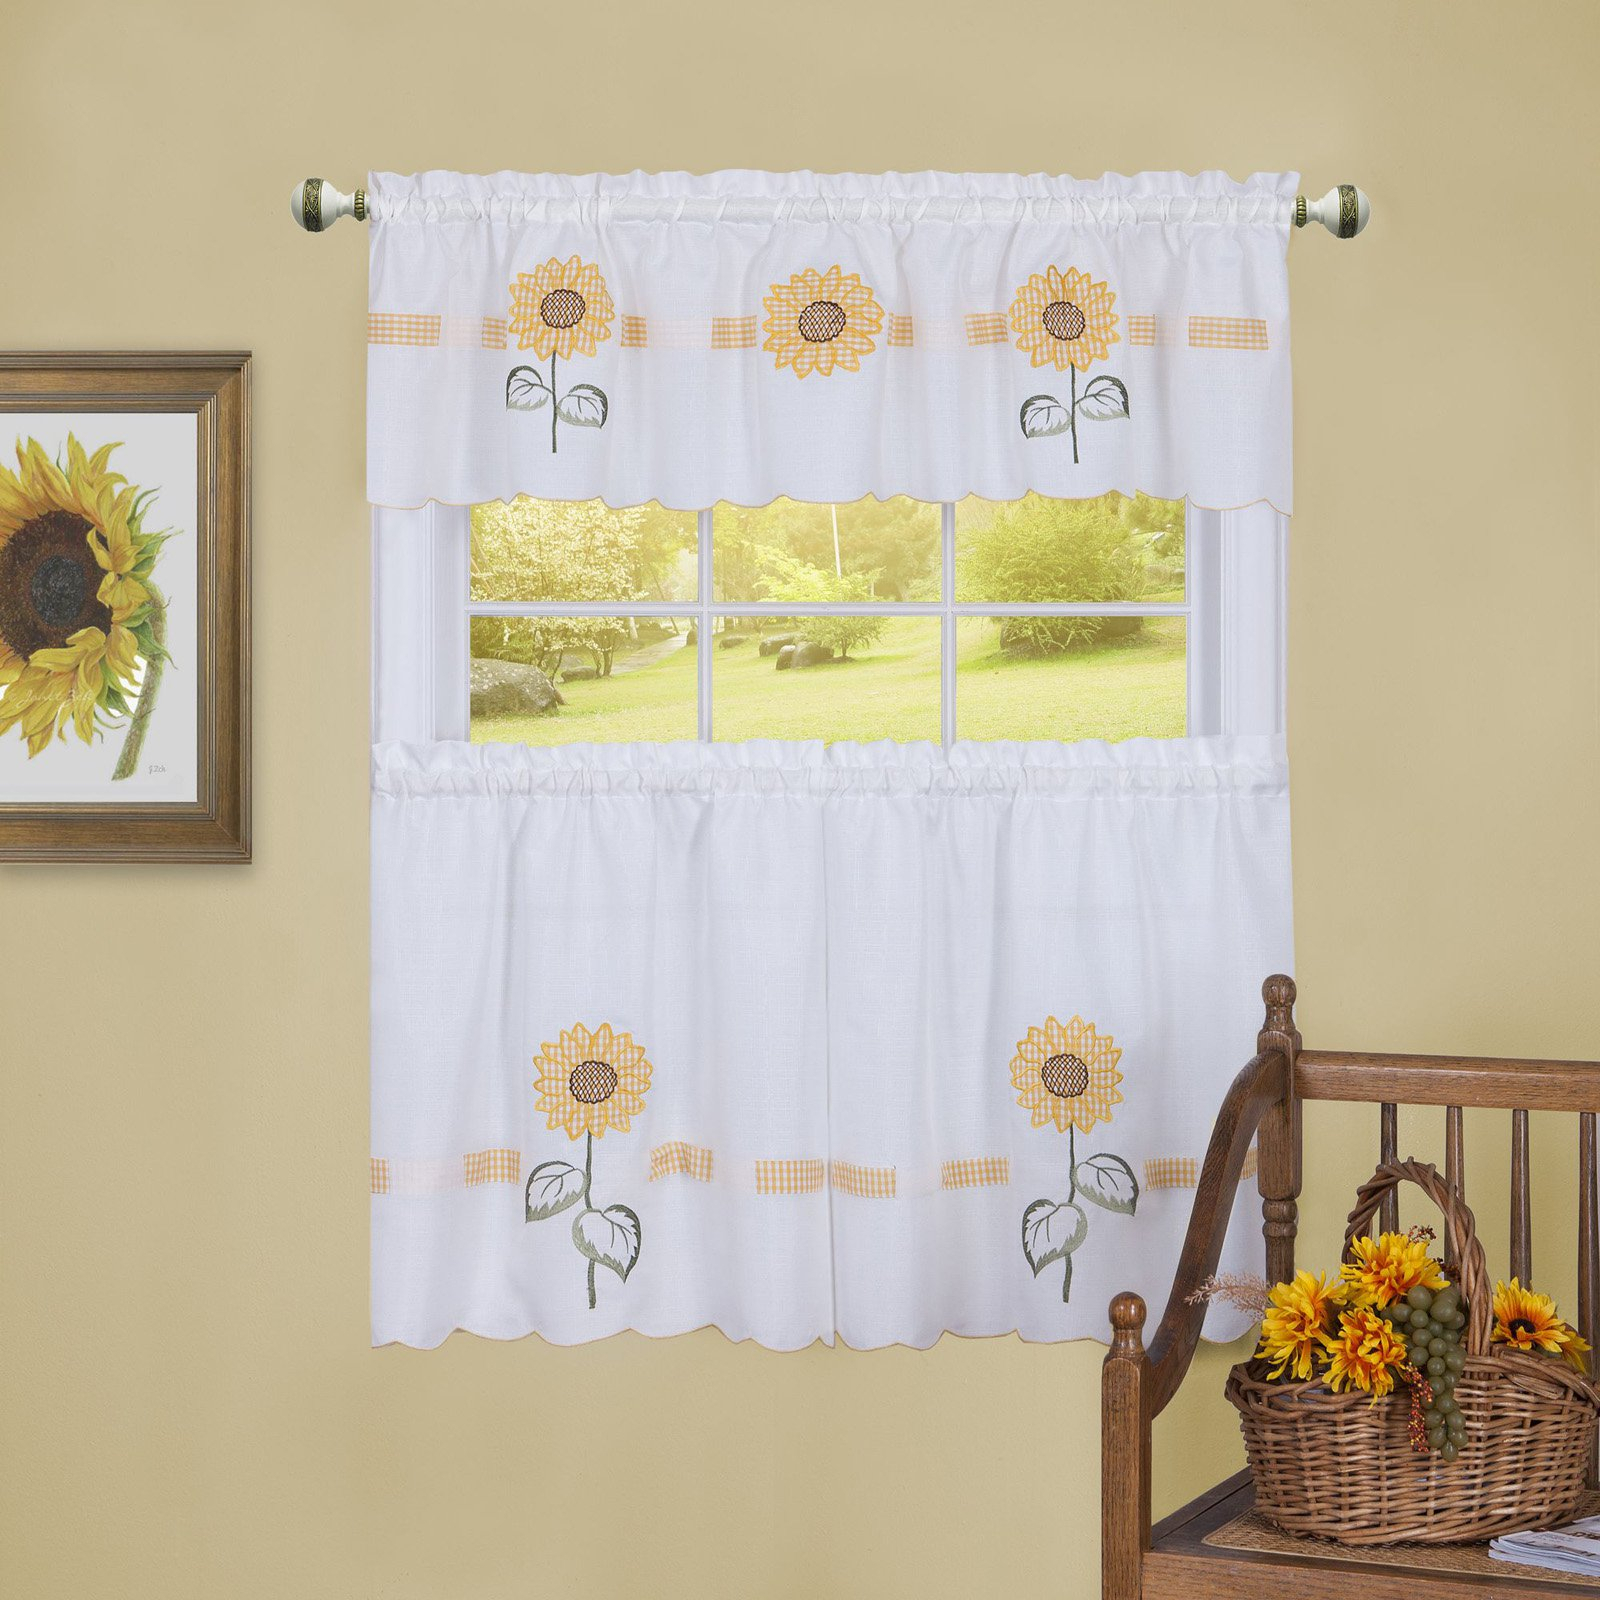 Achim Sun Blossoms Embellished Tier And Valance Window Regarding Traditional Tailored Window Curtains With Embroidered Yellow Sunflowers (View 3 of 20)